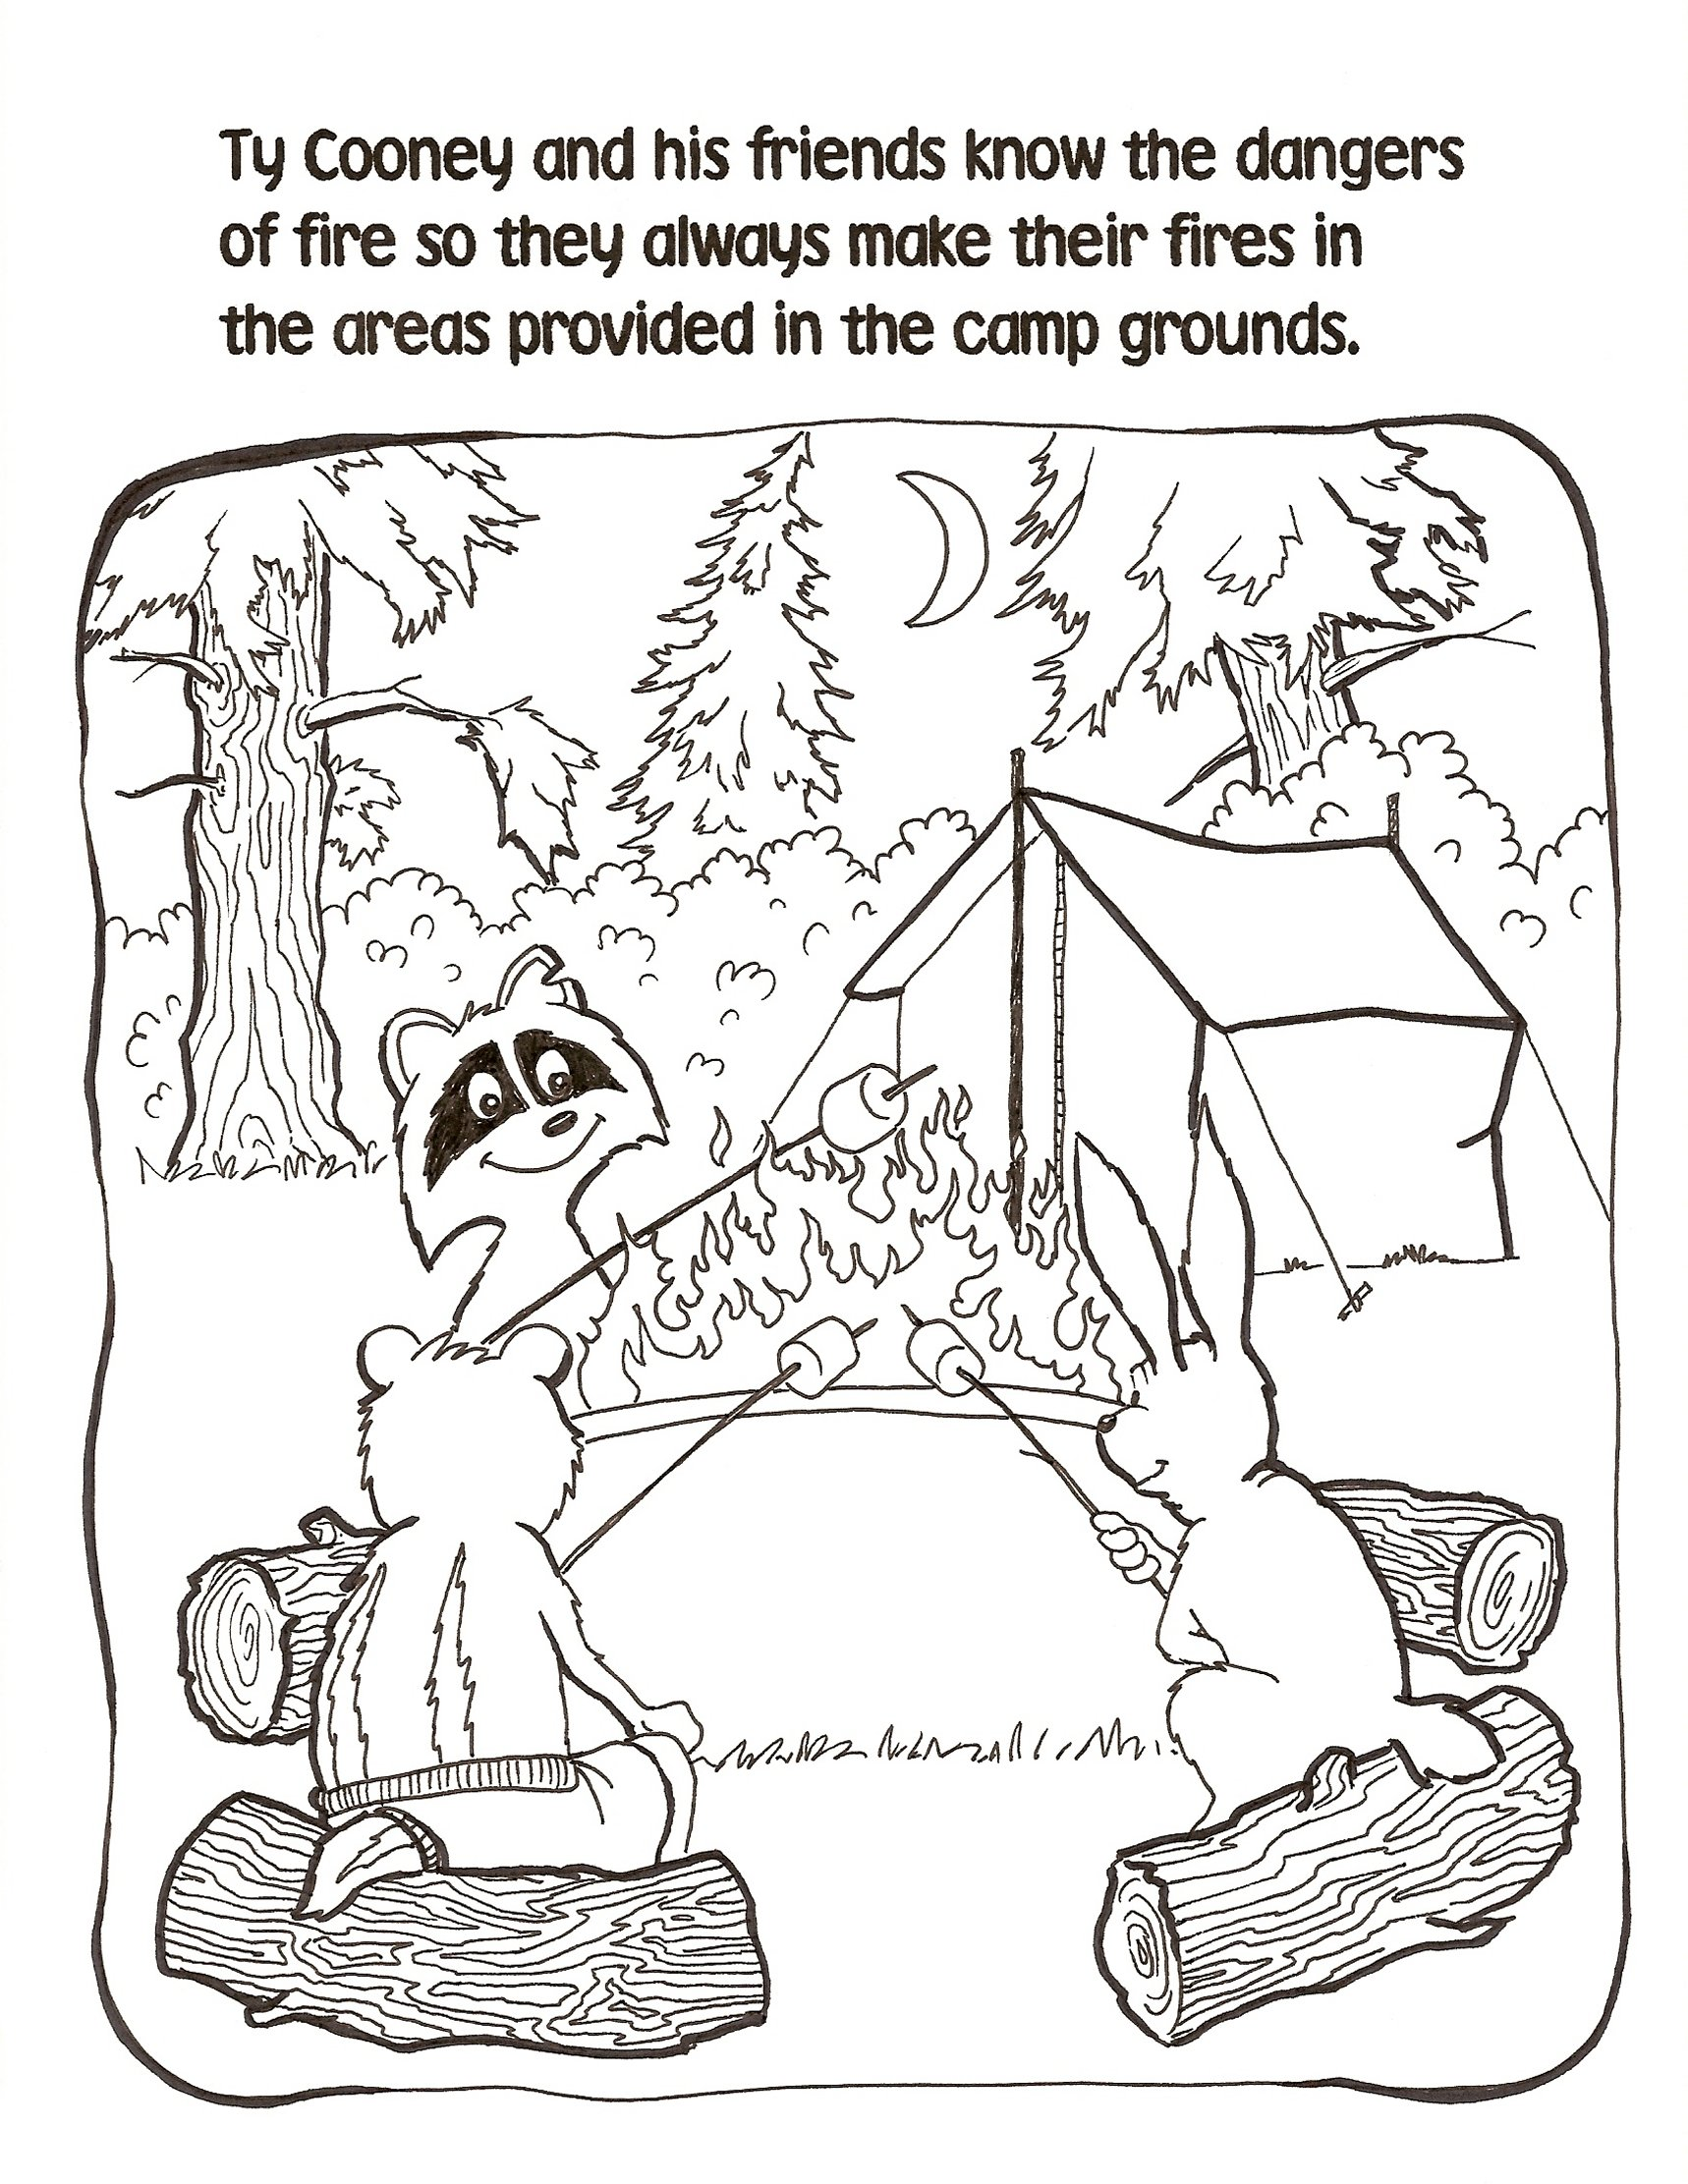 Children Camp Fire Colouring Pages Sketch Coloring Page